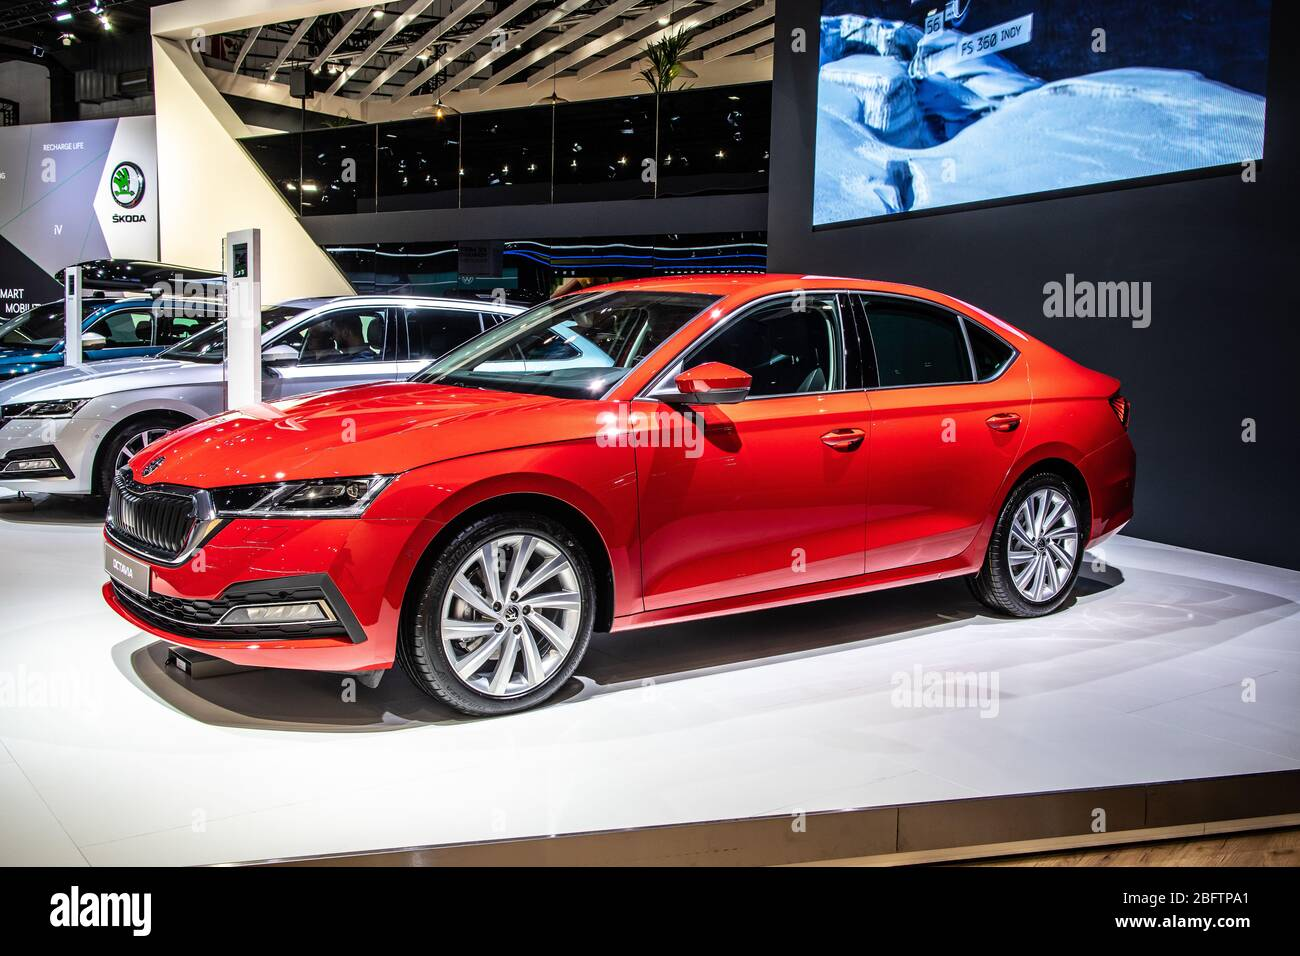 Brussels Belgium Jan 09 2020 All New Skoda Octavia Iv At Brussels Motor Show Fourth Generation Mk4 Car Produced By Skoda Auto Stock Photo Alamy